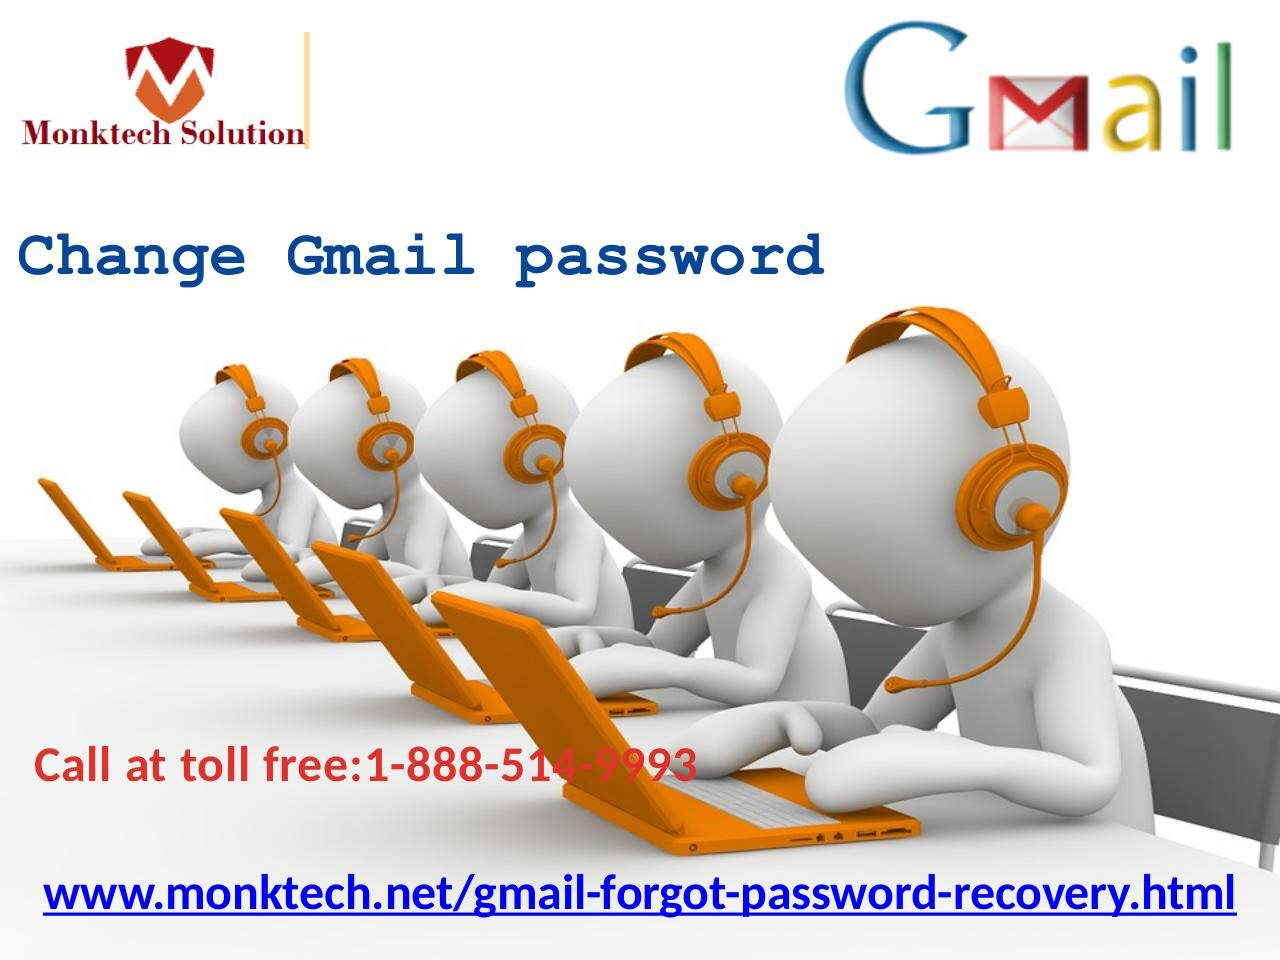 Do you know how to change Gmail password 18885149993